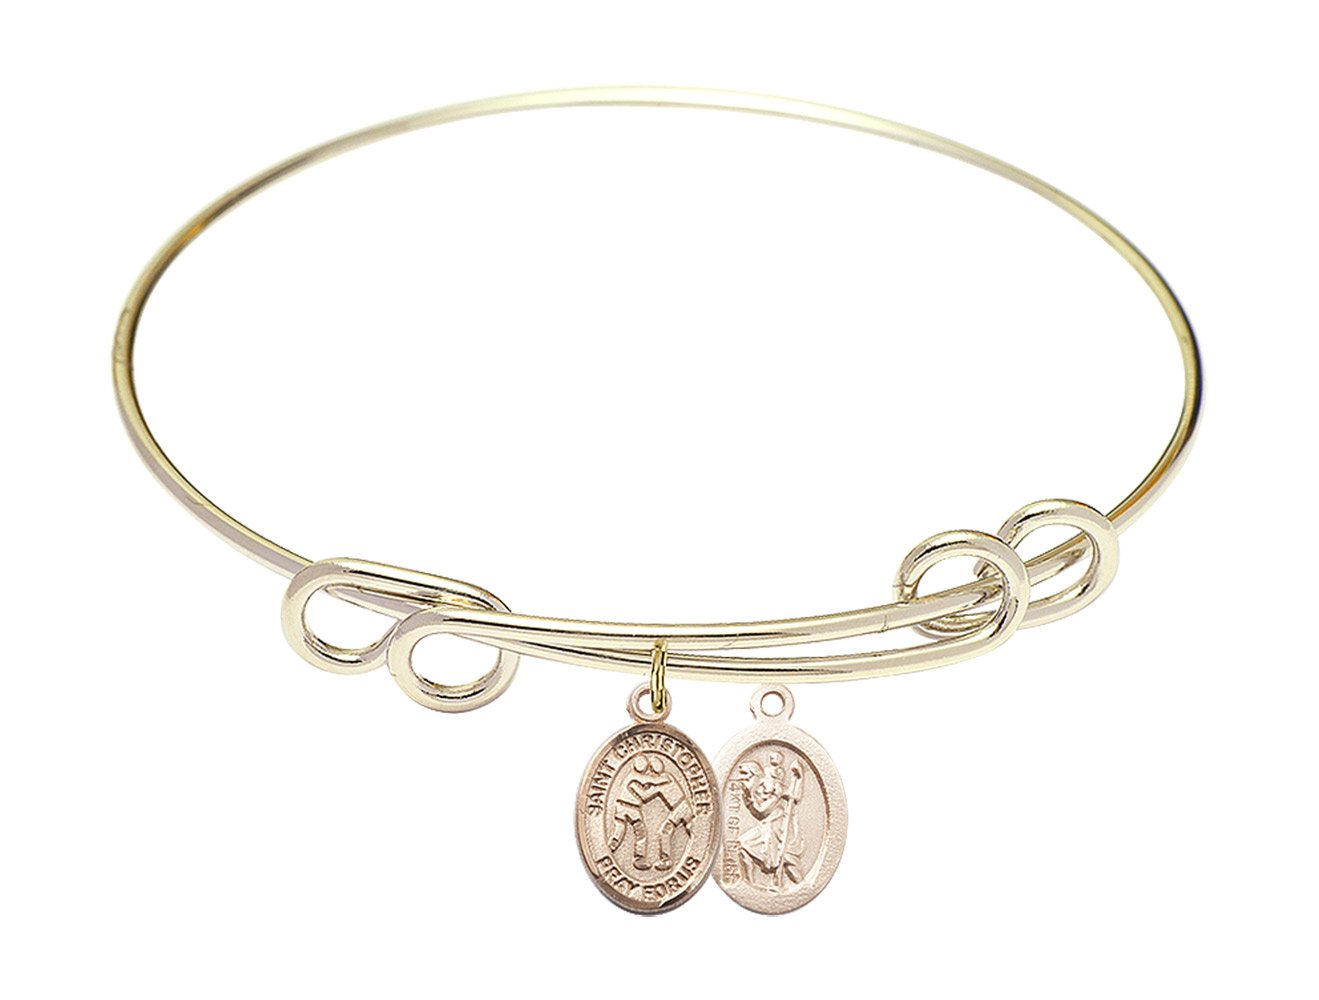 8 1/2 inch Round Double Loop Bangle Bracelet w/St. Christopher/Wrestling in Gold-Filled by Bonyak Jewelry